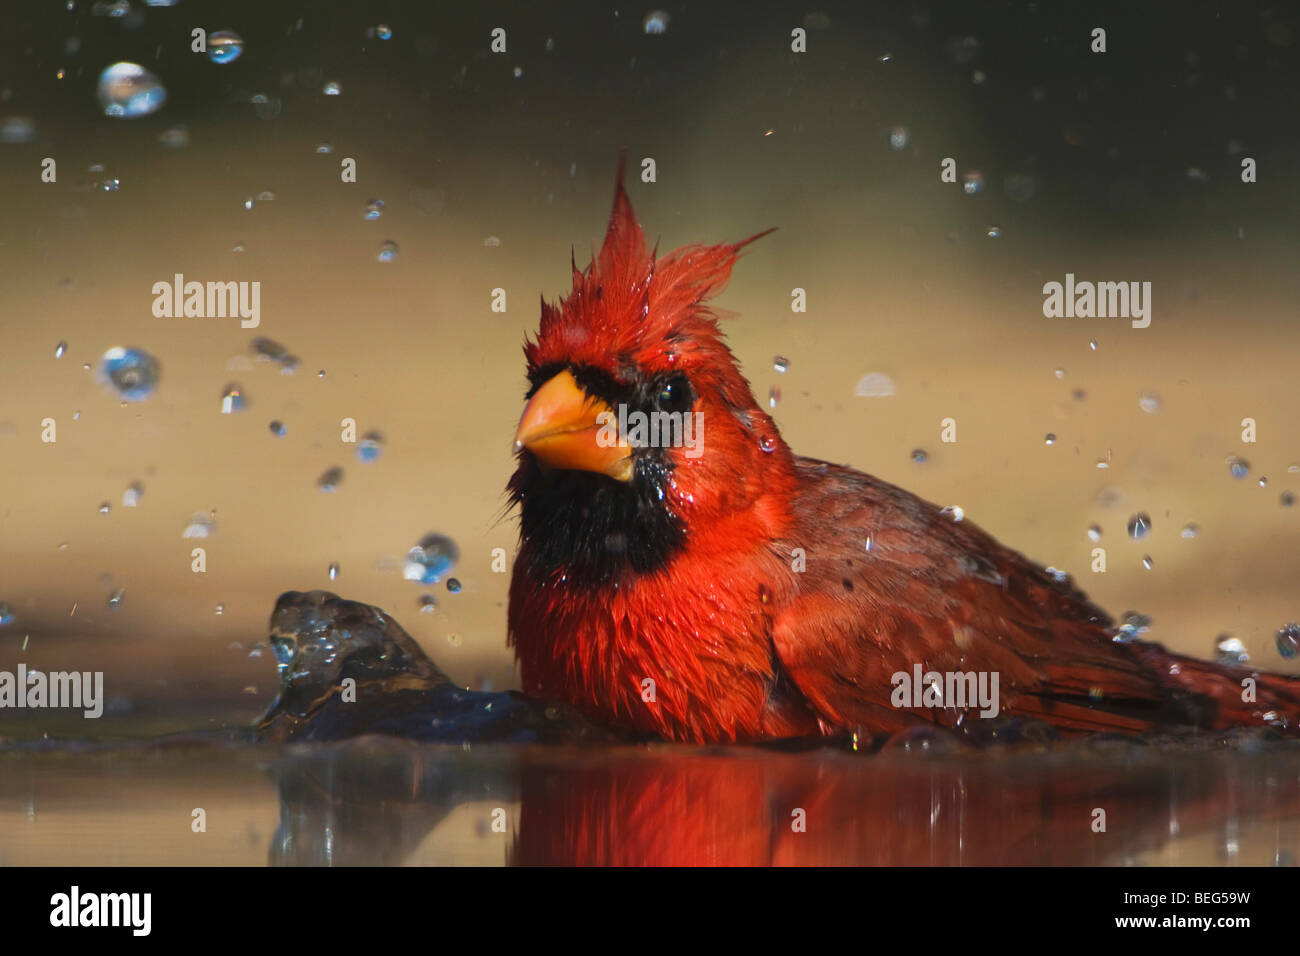 Cardinal rouge (Cardinalis cardinalis),mâle echelle, Rio Grande Valley, Texas, États-Unis Photo Stock